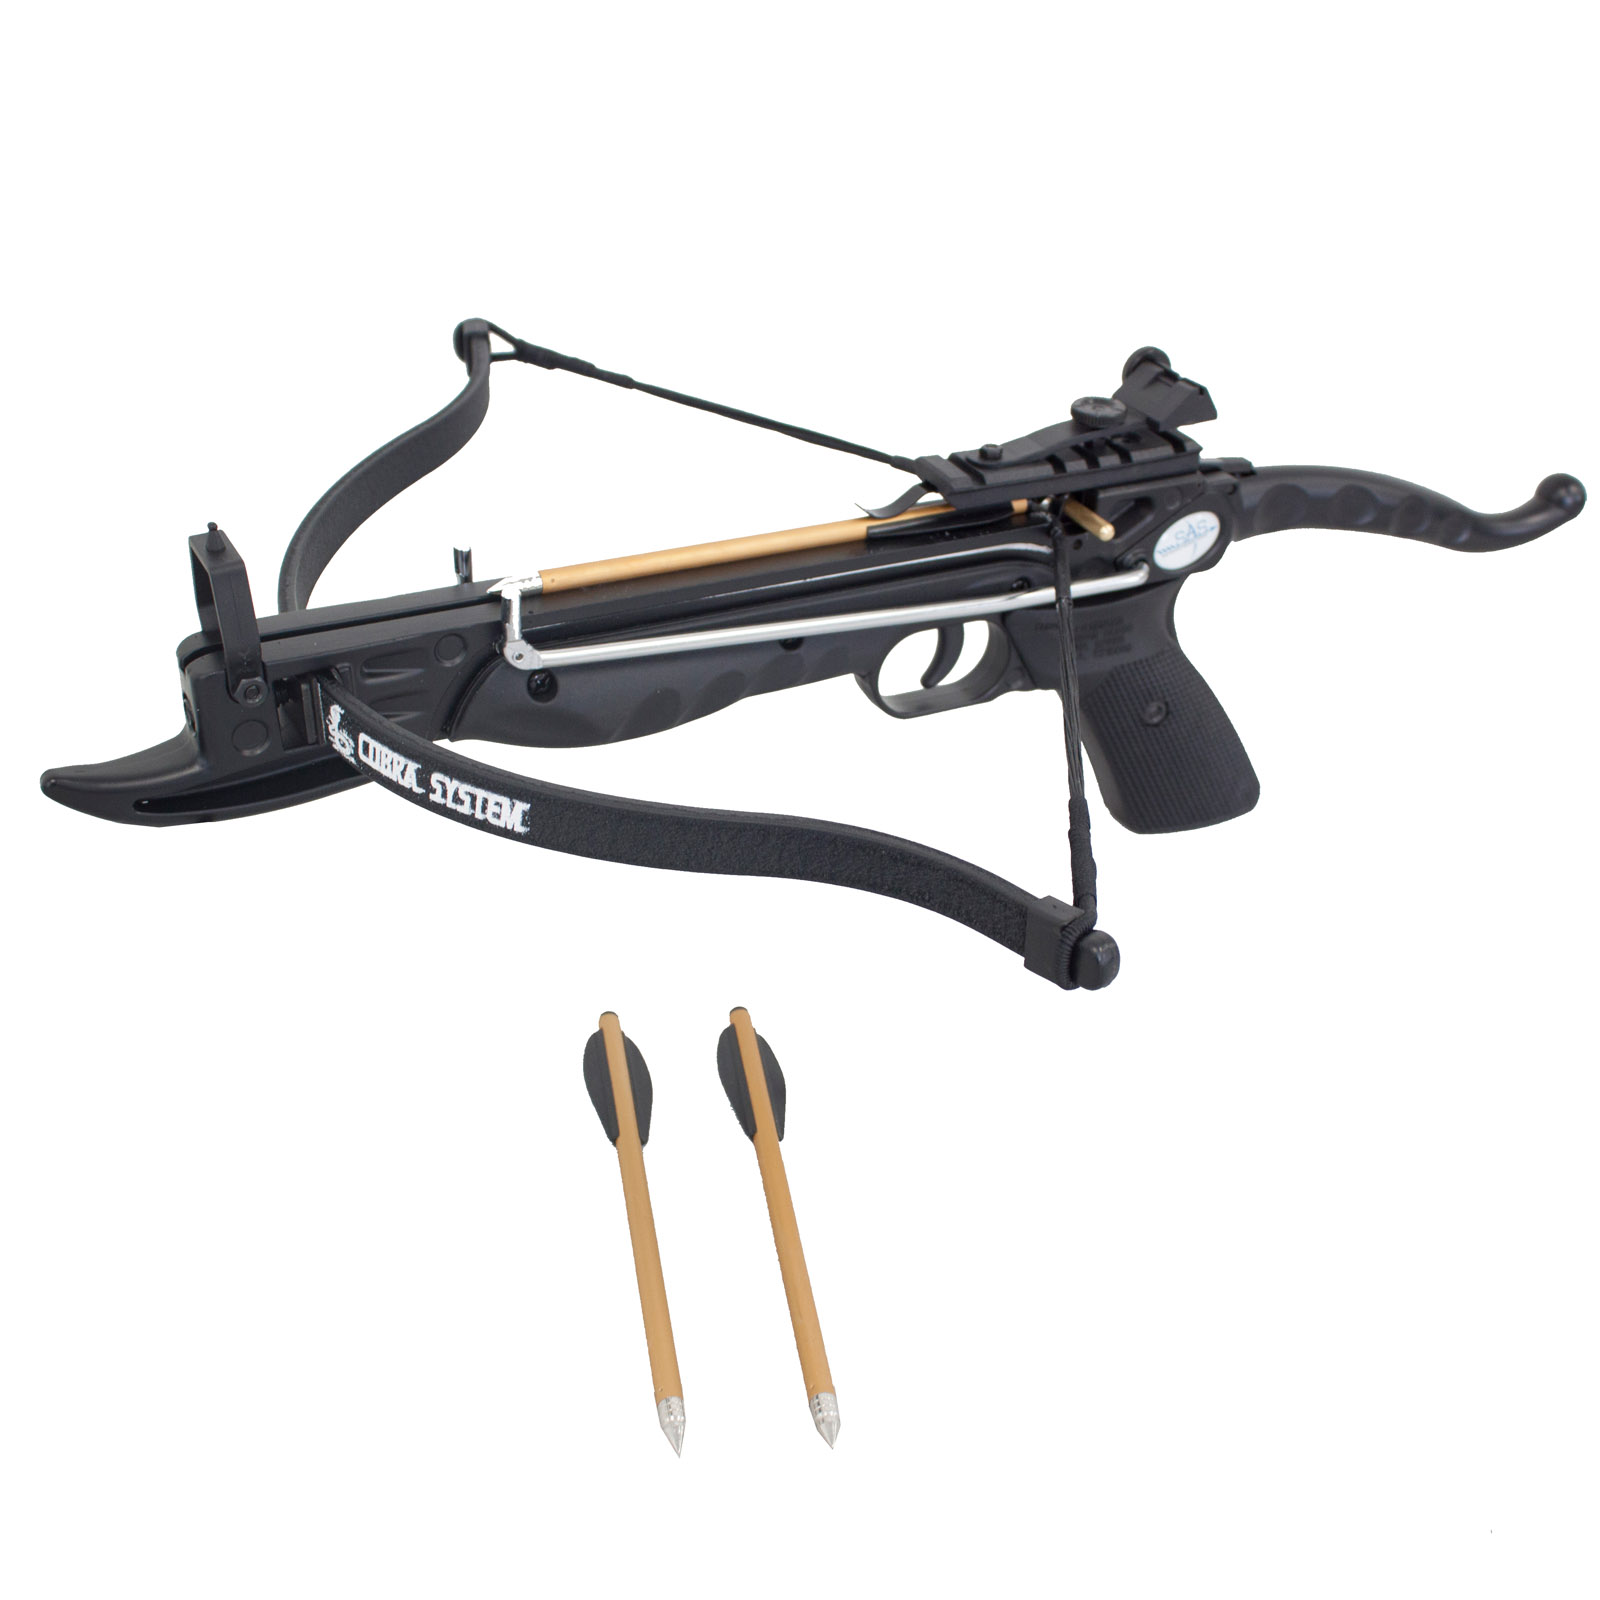 SAS Prophecy 80 lbs Self-cocking Mini Crossbow - Black